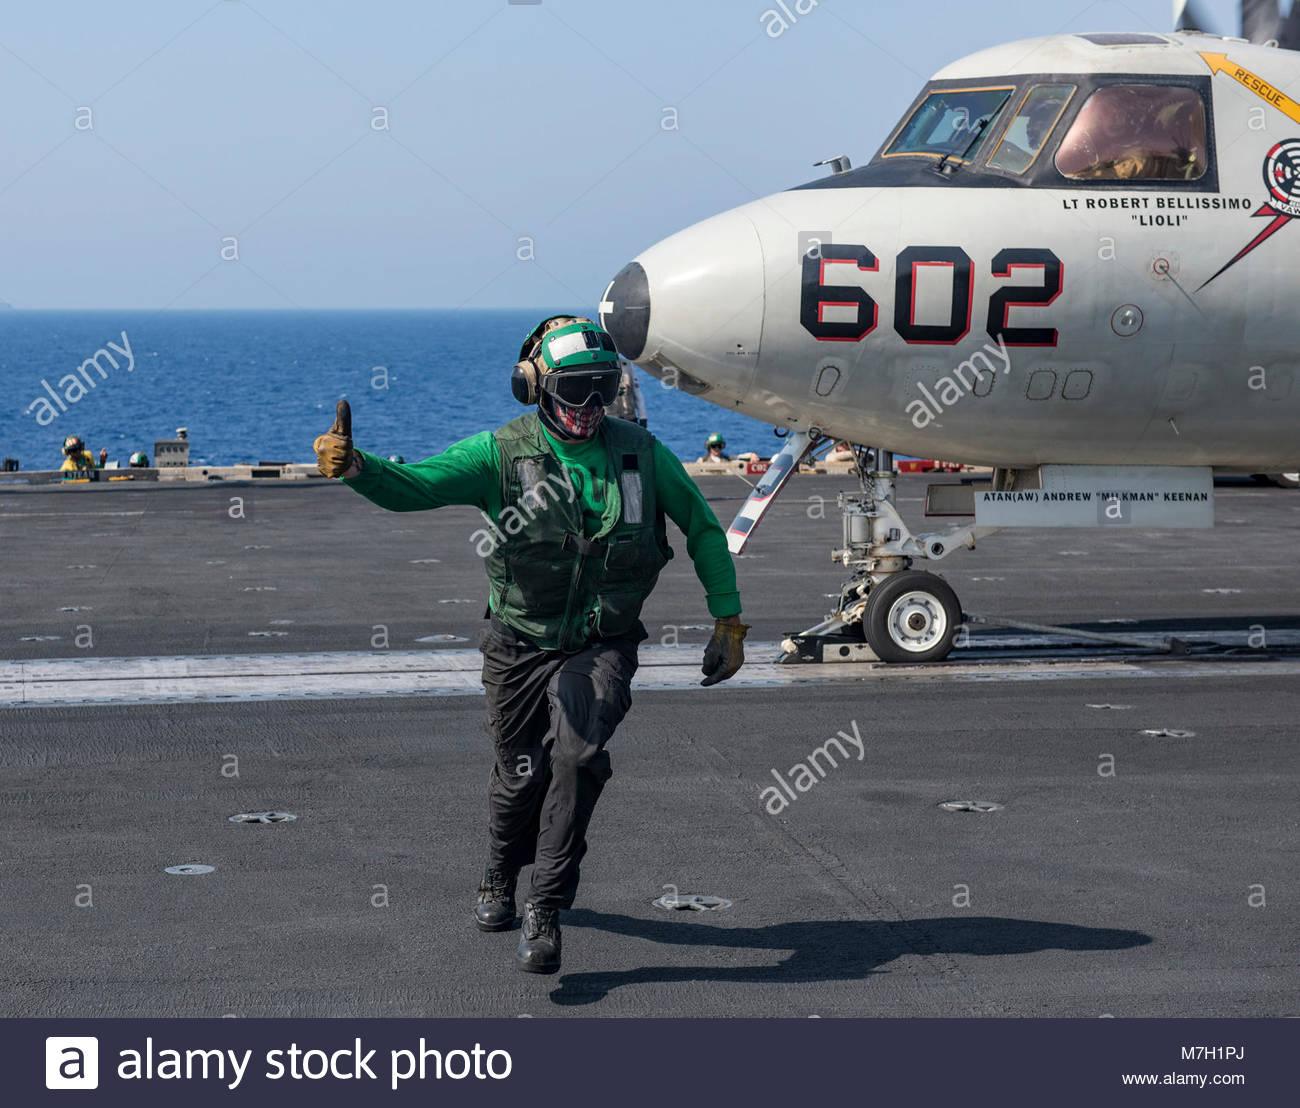 USS George HW Bush (CVN 77). MEDITERRANEAN SEA (July 12, 2017) A Sailor signals during flight operations aboard Stock Photo